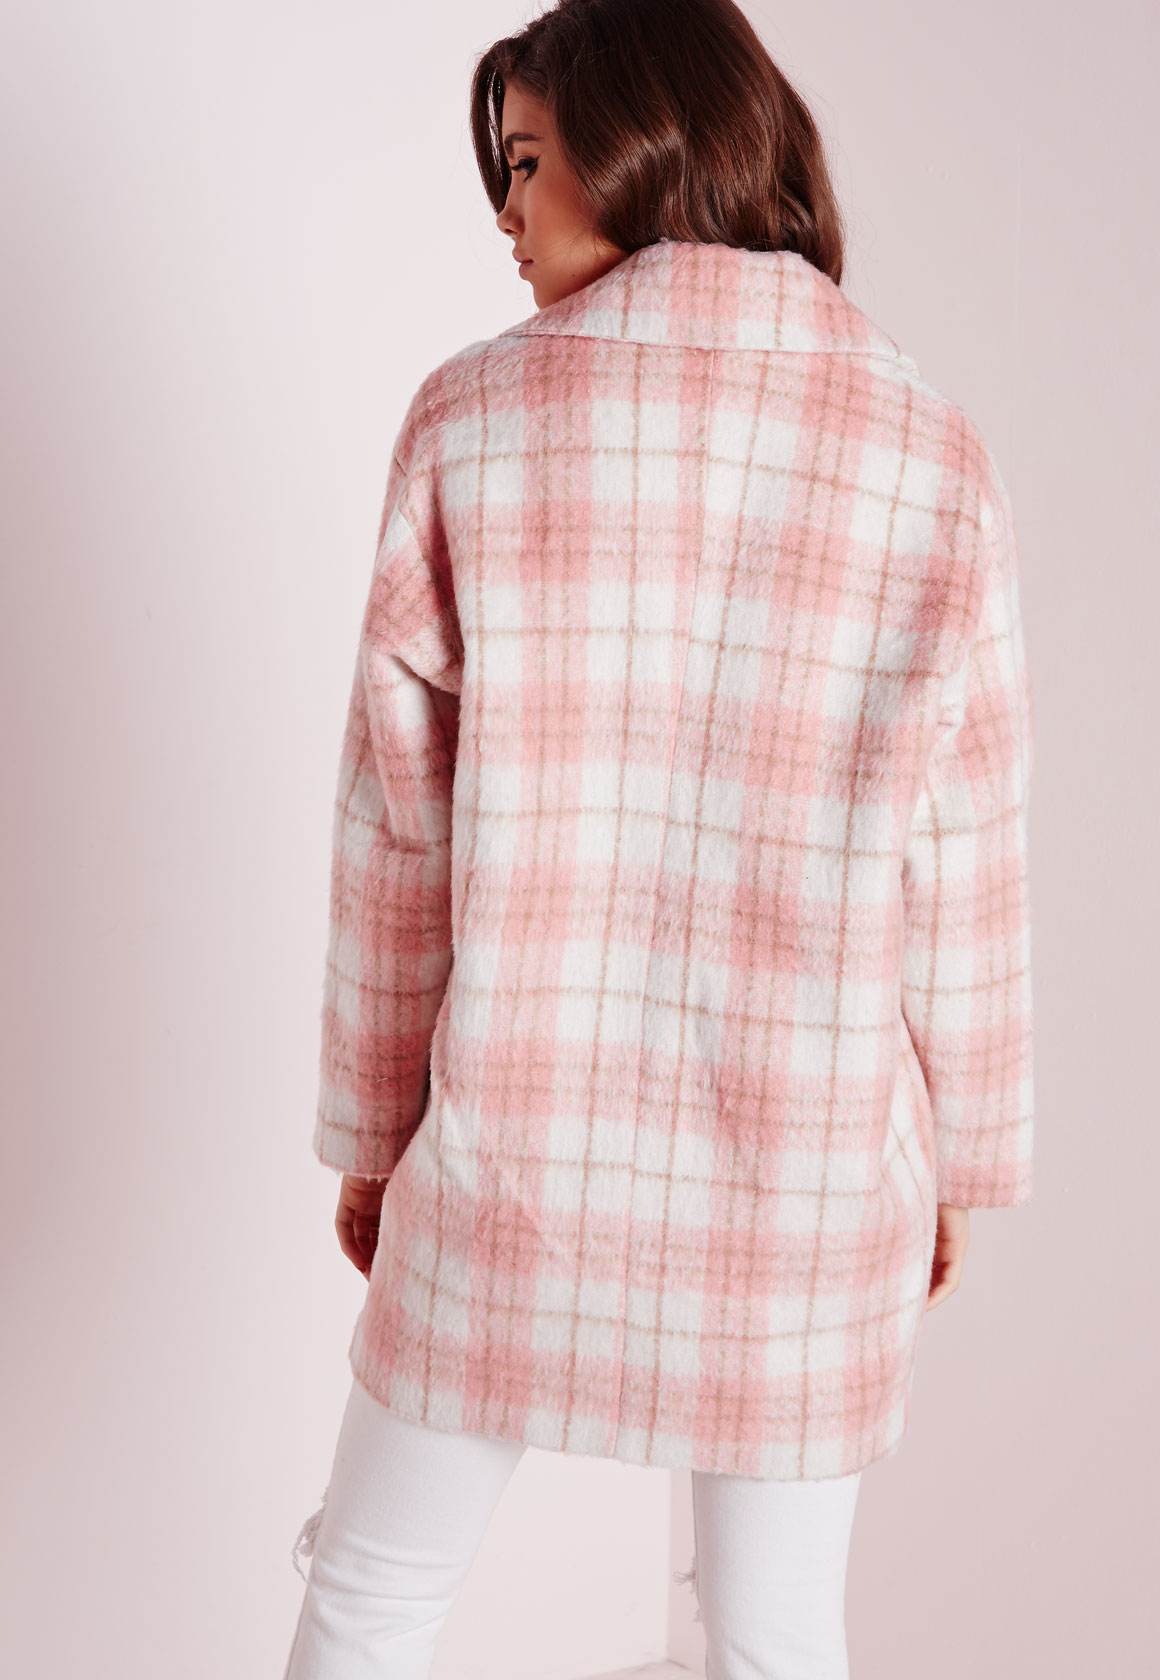 Missguided Lena Oversized Cocoon Coat Pink Check in Pink | Lyst